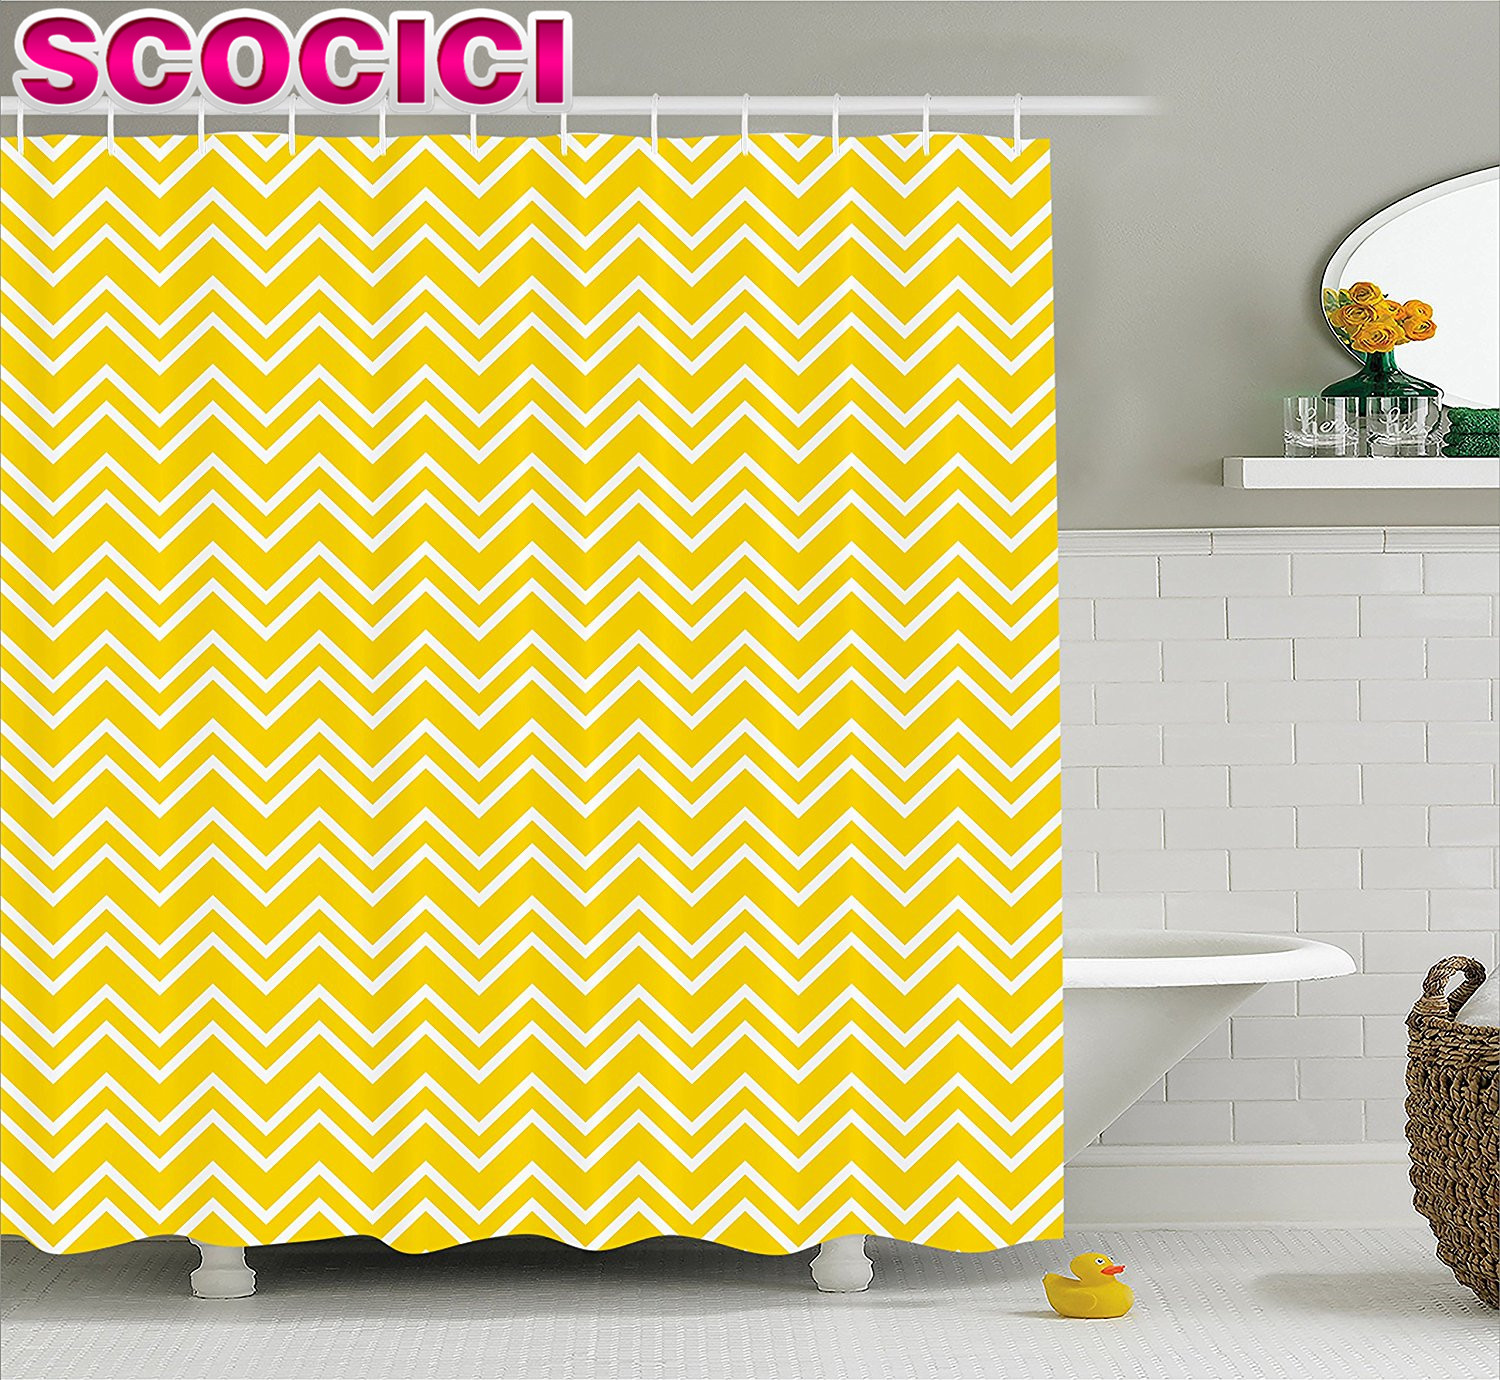 Chevron bathroom sets with shower curtain and rugs - Yellow Decor Shower Curtain Zig Zag Chevron Pattern In Yellow And White Modern Inspired Art Print Fabric Bathroom Decor Set Yell